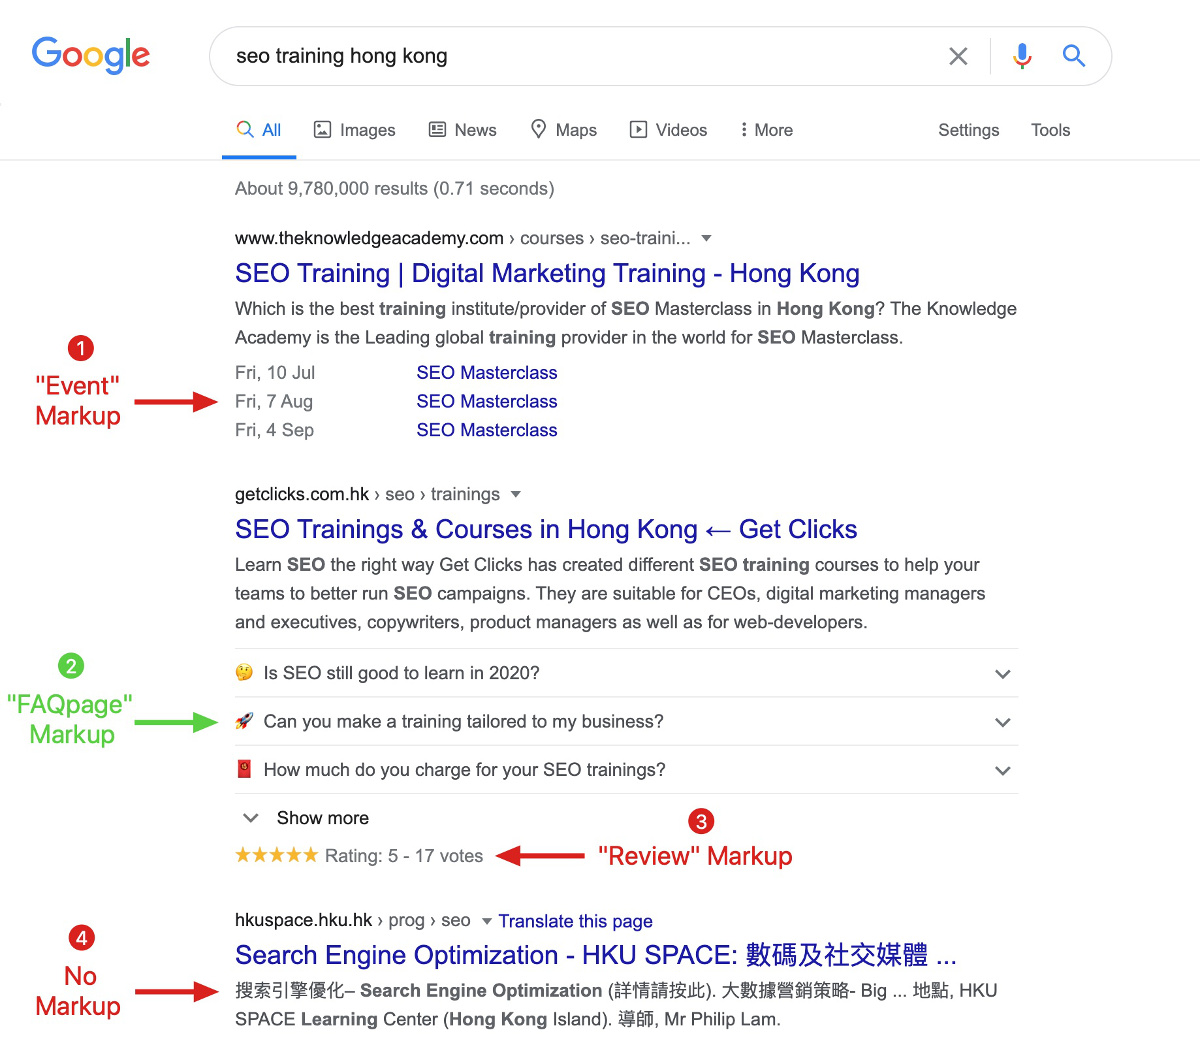 examples of rich snippets in google search results